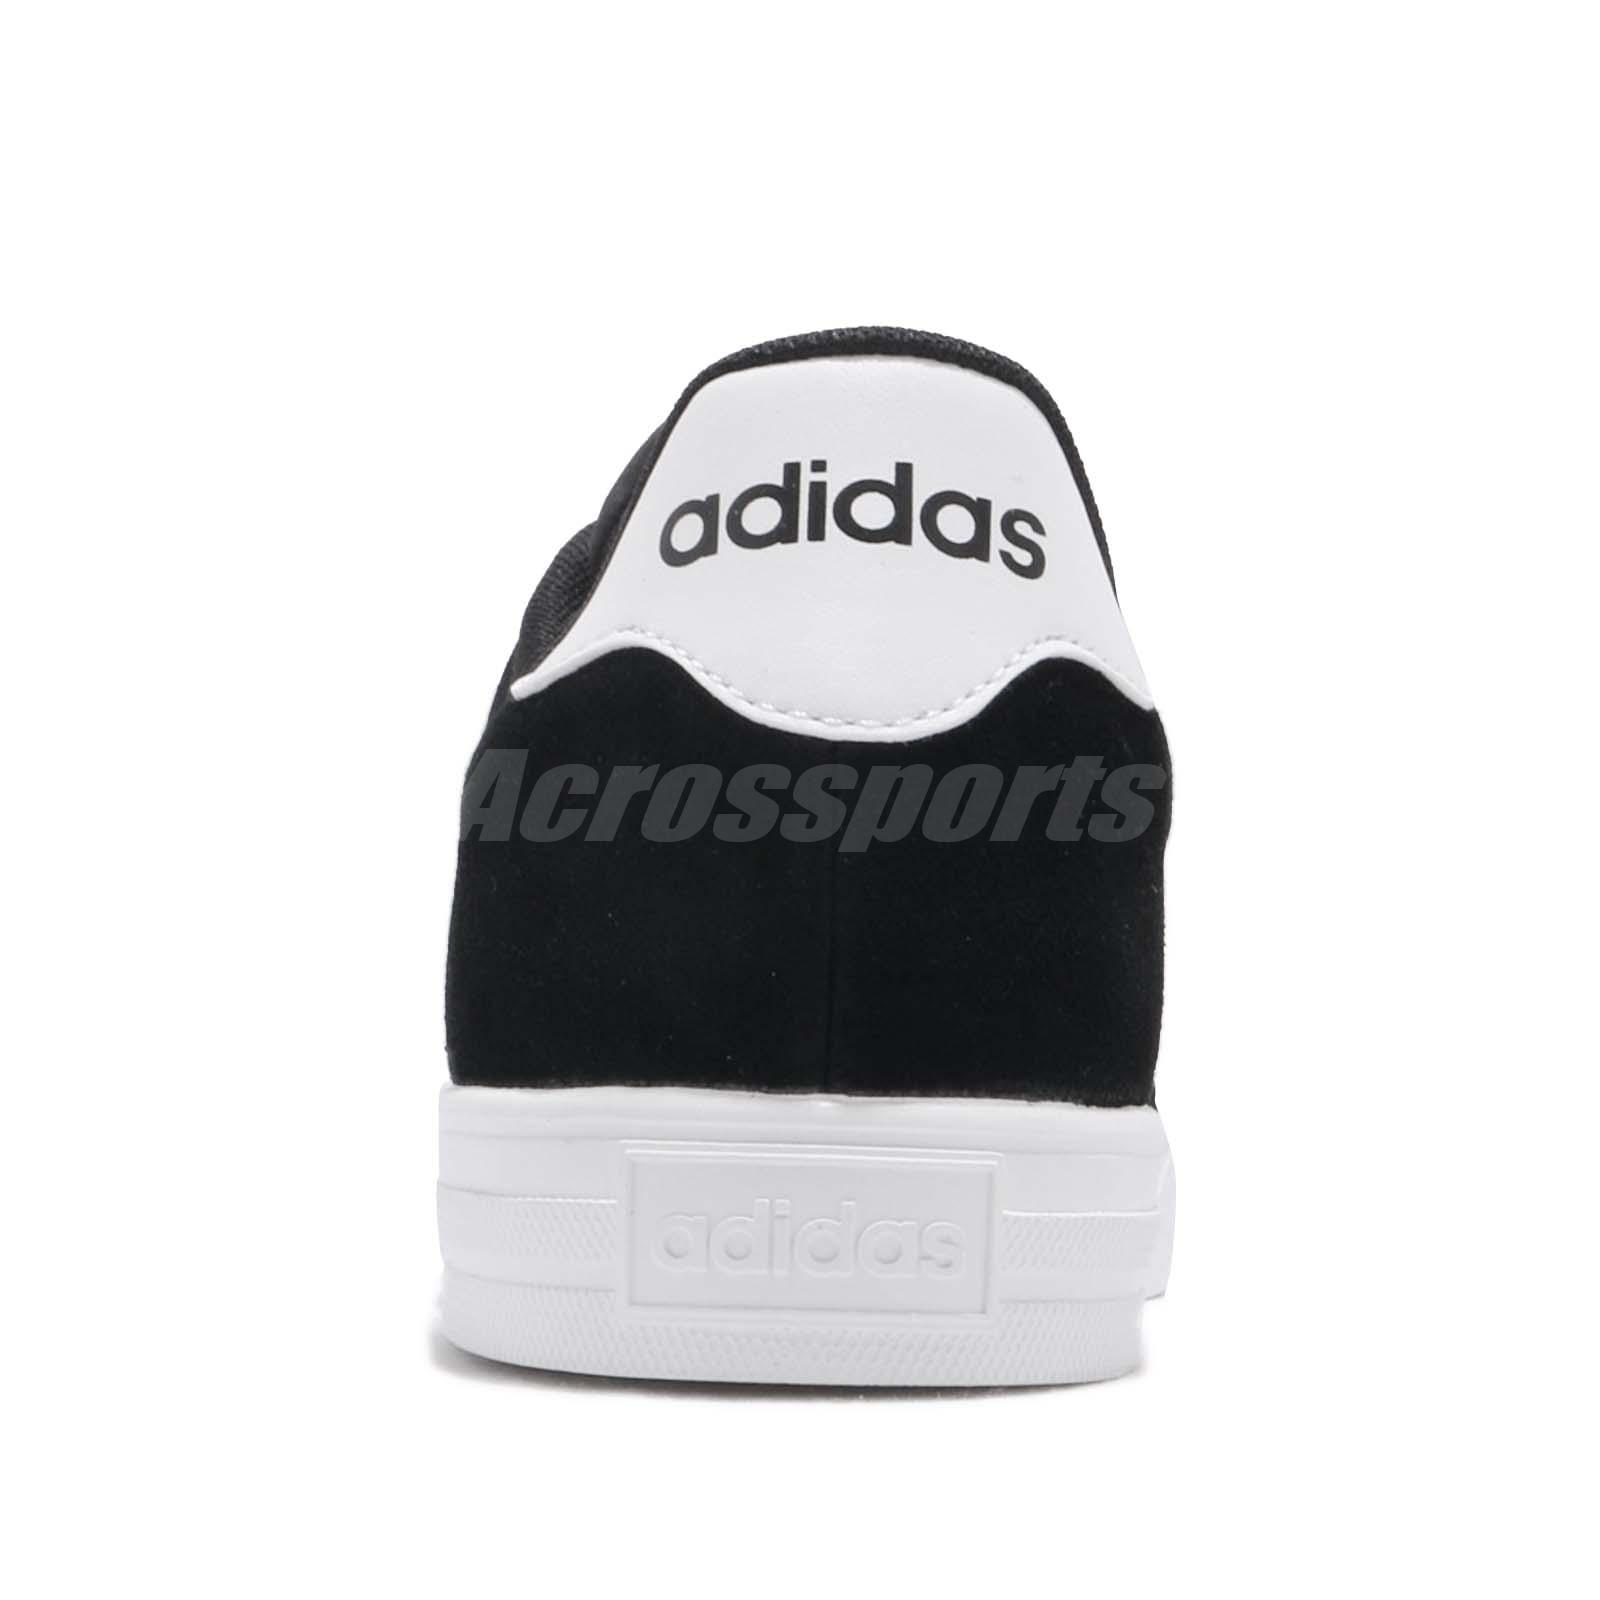 Adidas Daily 0 Mens Casual Neo Black White Shoes 2 Lifestyle wN8nPkX0OZ